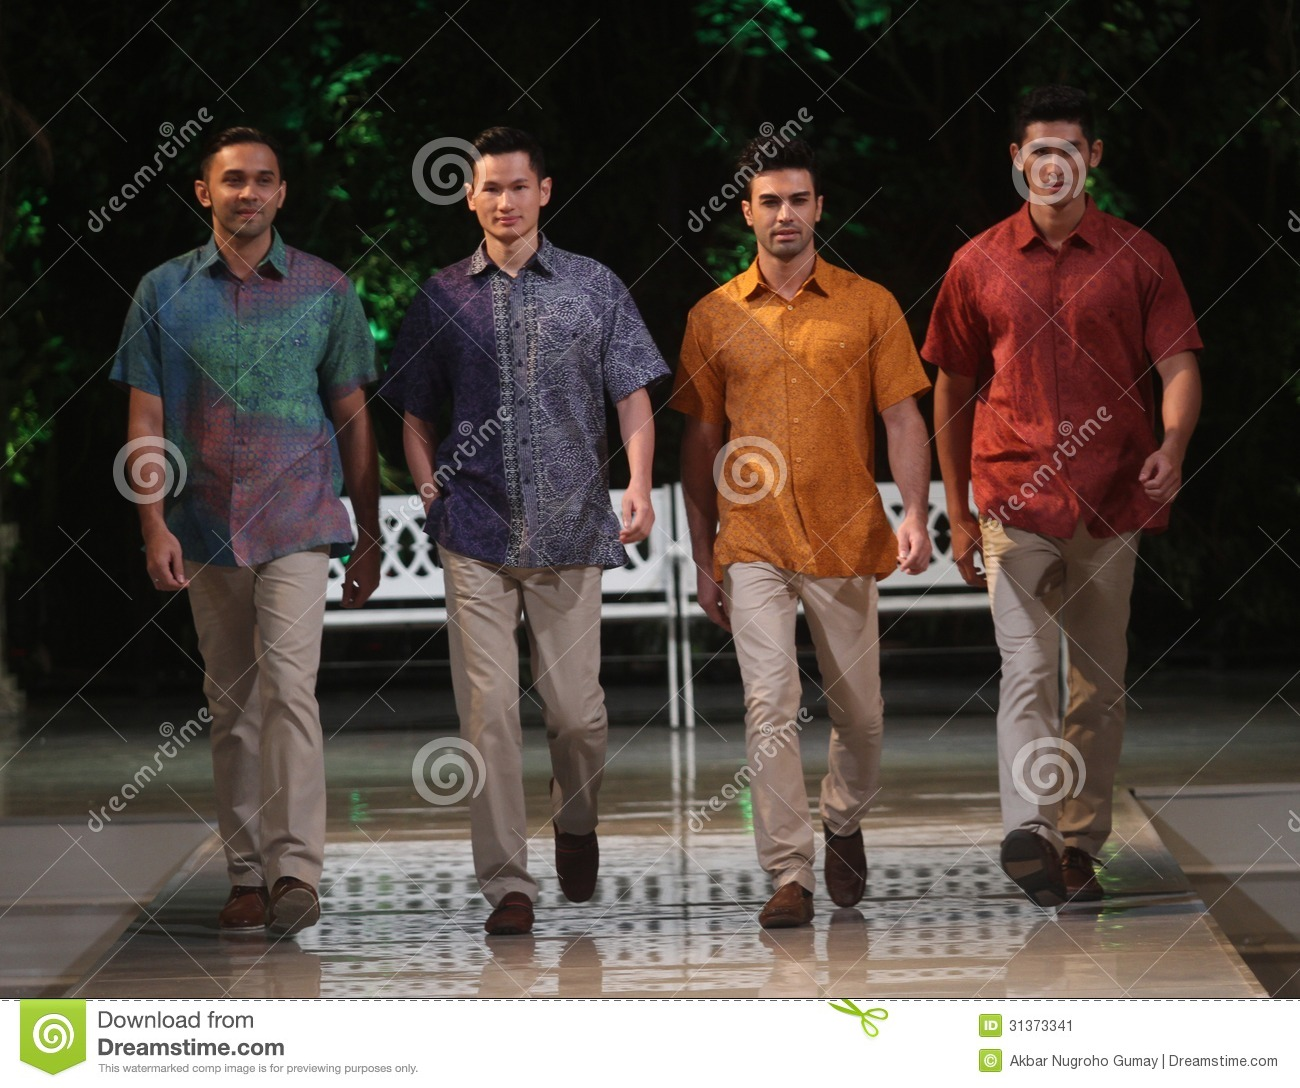 Batik Keris Sukoharjo Solo: Asian Man Model At Fashion Show Runway Editorial Photo